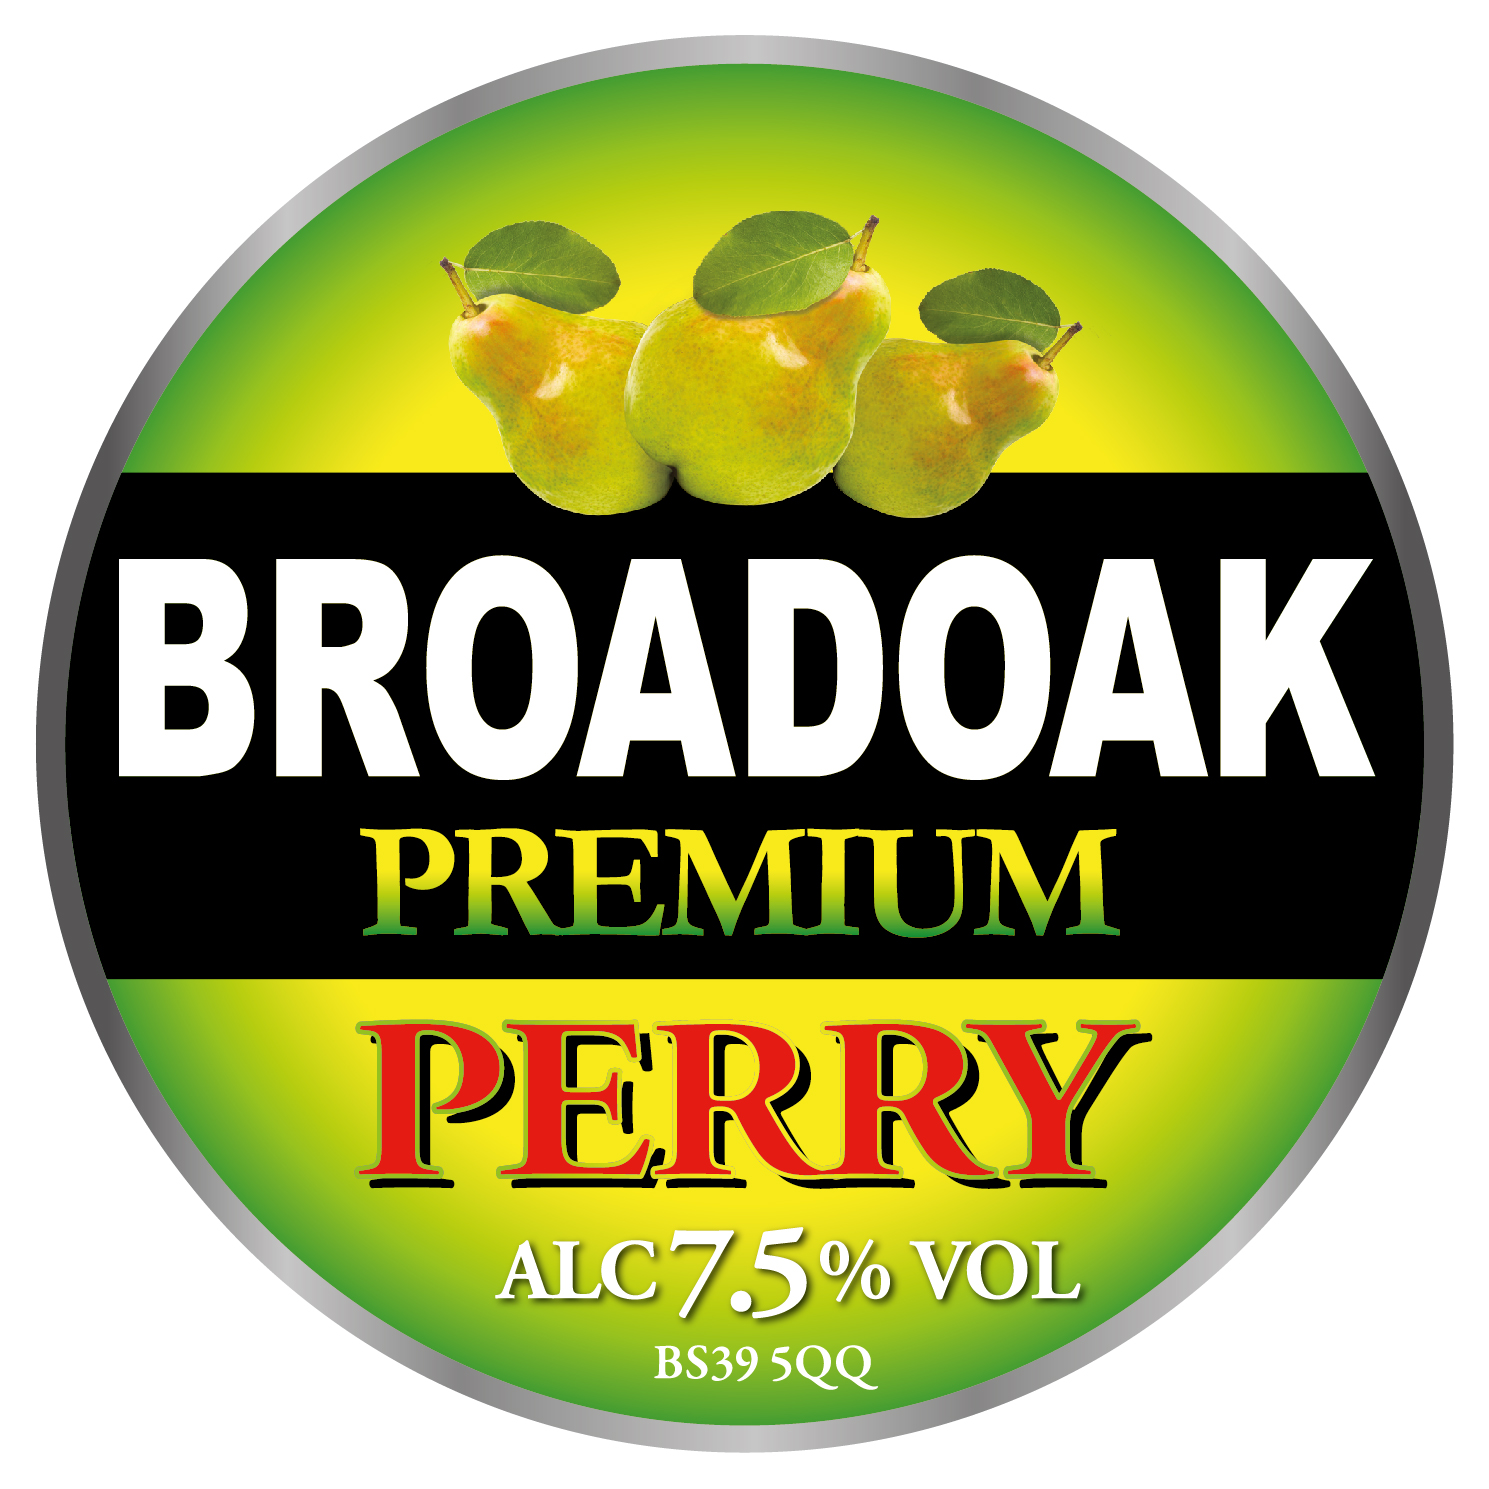 Broadoak Premium Perry 20Ltr Bag in Box    7.5%